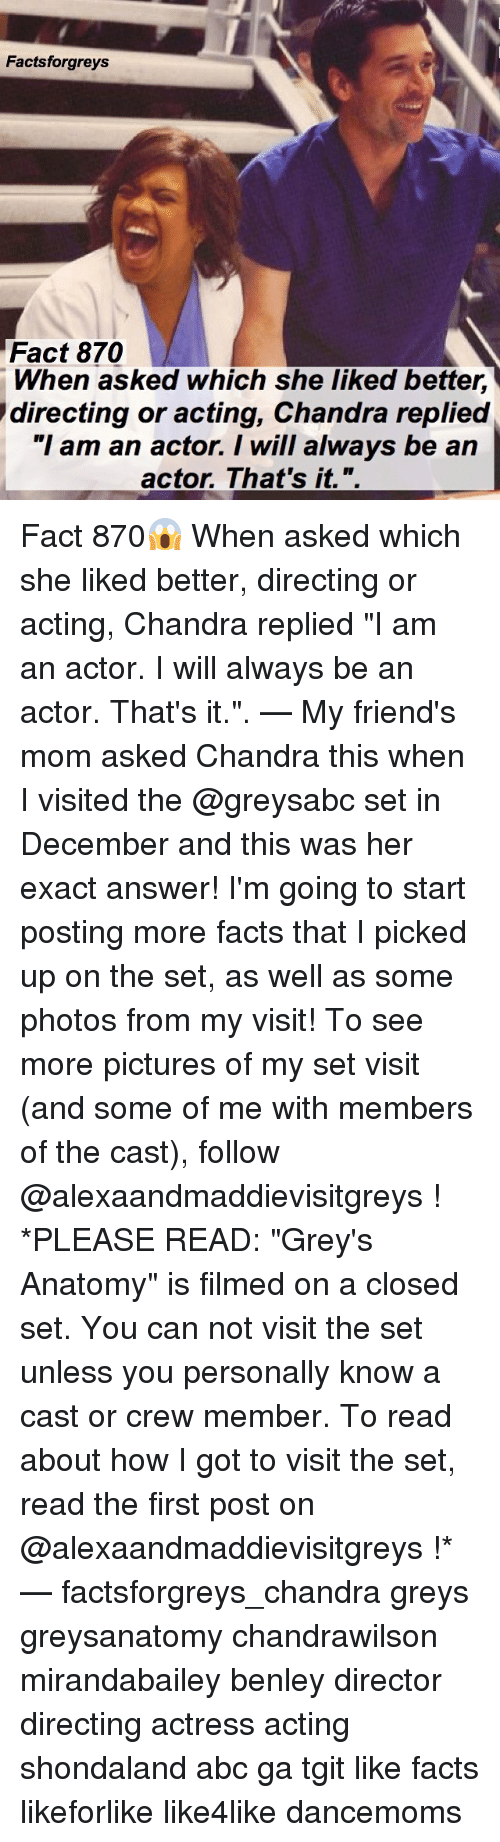 """Abc, Facts, and Friends: Factsforgreys  Fact 870  When asked which she liked better,  directing or acting, Chandra replied  """"I am an actor. I will always be an  actor. That's it. """". Fact 870😱 When asked which she liked better, directing or acting, Chandra replied """"I am an actor. I will always be an actor. That's it."""". — My friend's mom asked Chandra this when I visited the @greysabc set in December and this was her exact answer! I'm going to start posting more facts that I picked up on the set, as well as some photos from my visit! To see more pictures of my set visit (and some of me with members of the cast), follow @alexaandmaddievisitgreys ! *PLEASE READ: """"Grey's Anatomy"""" is filmed on a closed set. You can not visit the set unless you personally know a cast or crew member. To read about how I got to visit the set, read the first post on @alexaandmaddievisitgreys !* — factsforgreys_chandra greys greysanatomy chandrawilson mirandabailey benley director directing actress acting shondaland abc ga tgit like facts likeforlike like4like dancemoms"""